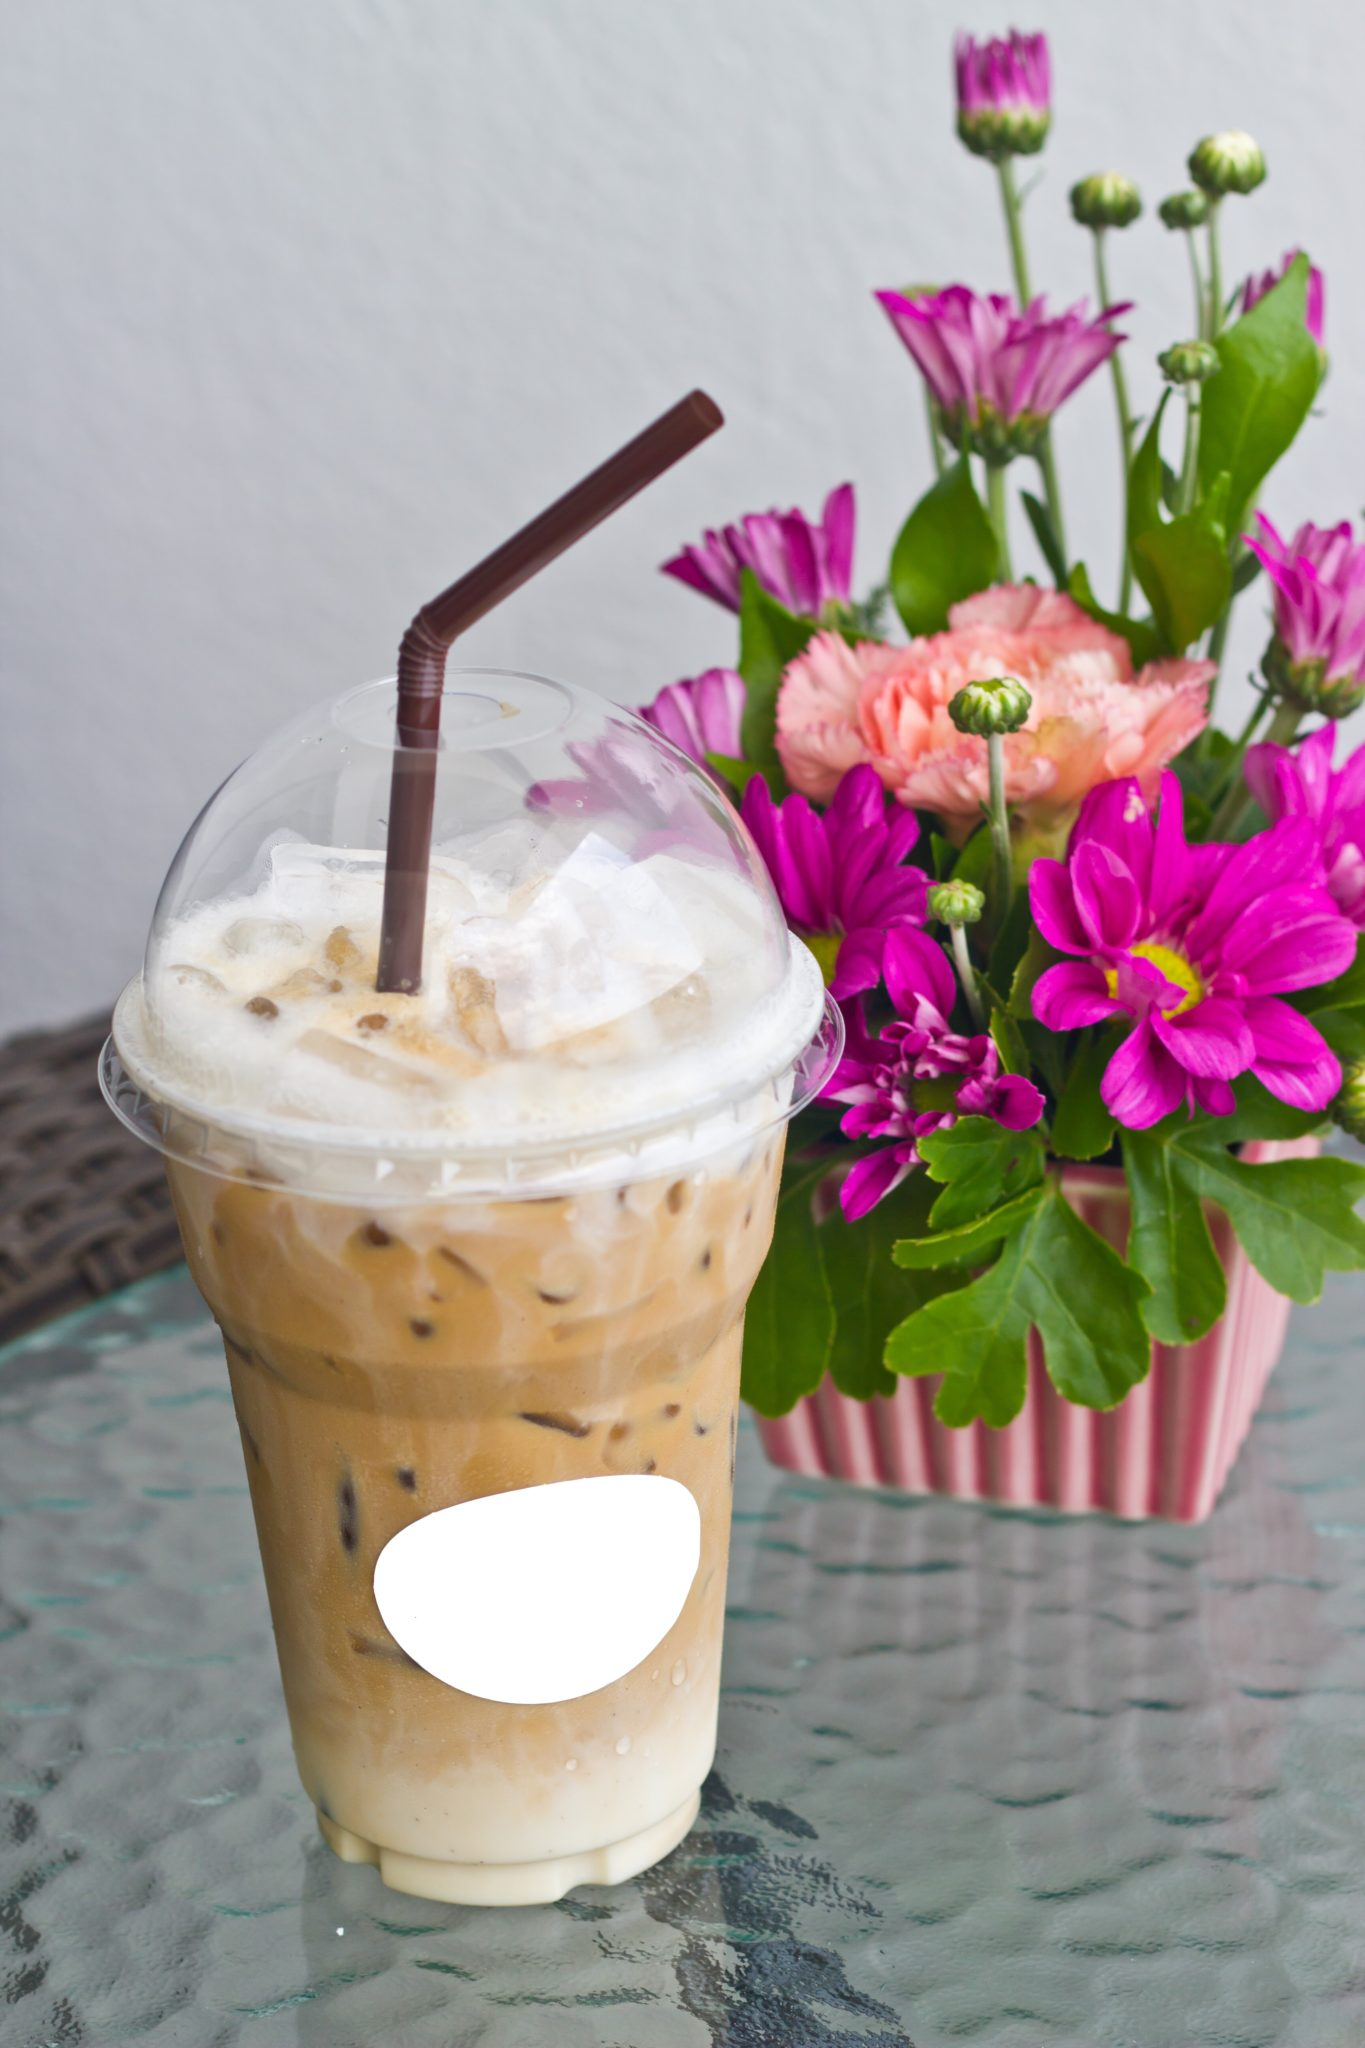 Iced coffee with a vase of flowers.